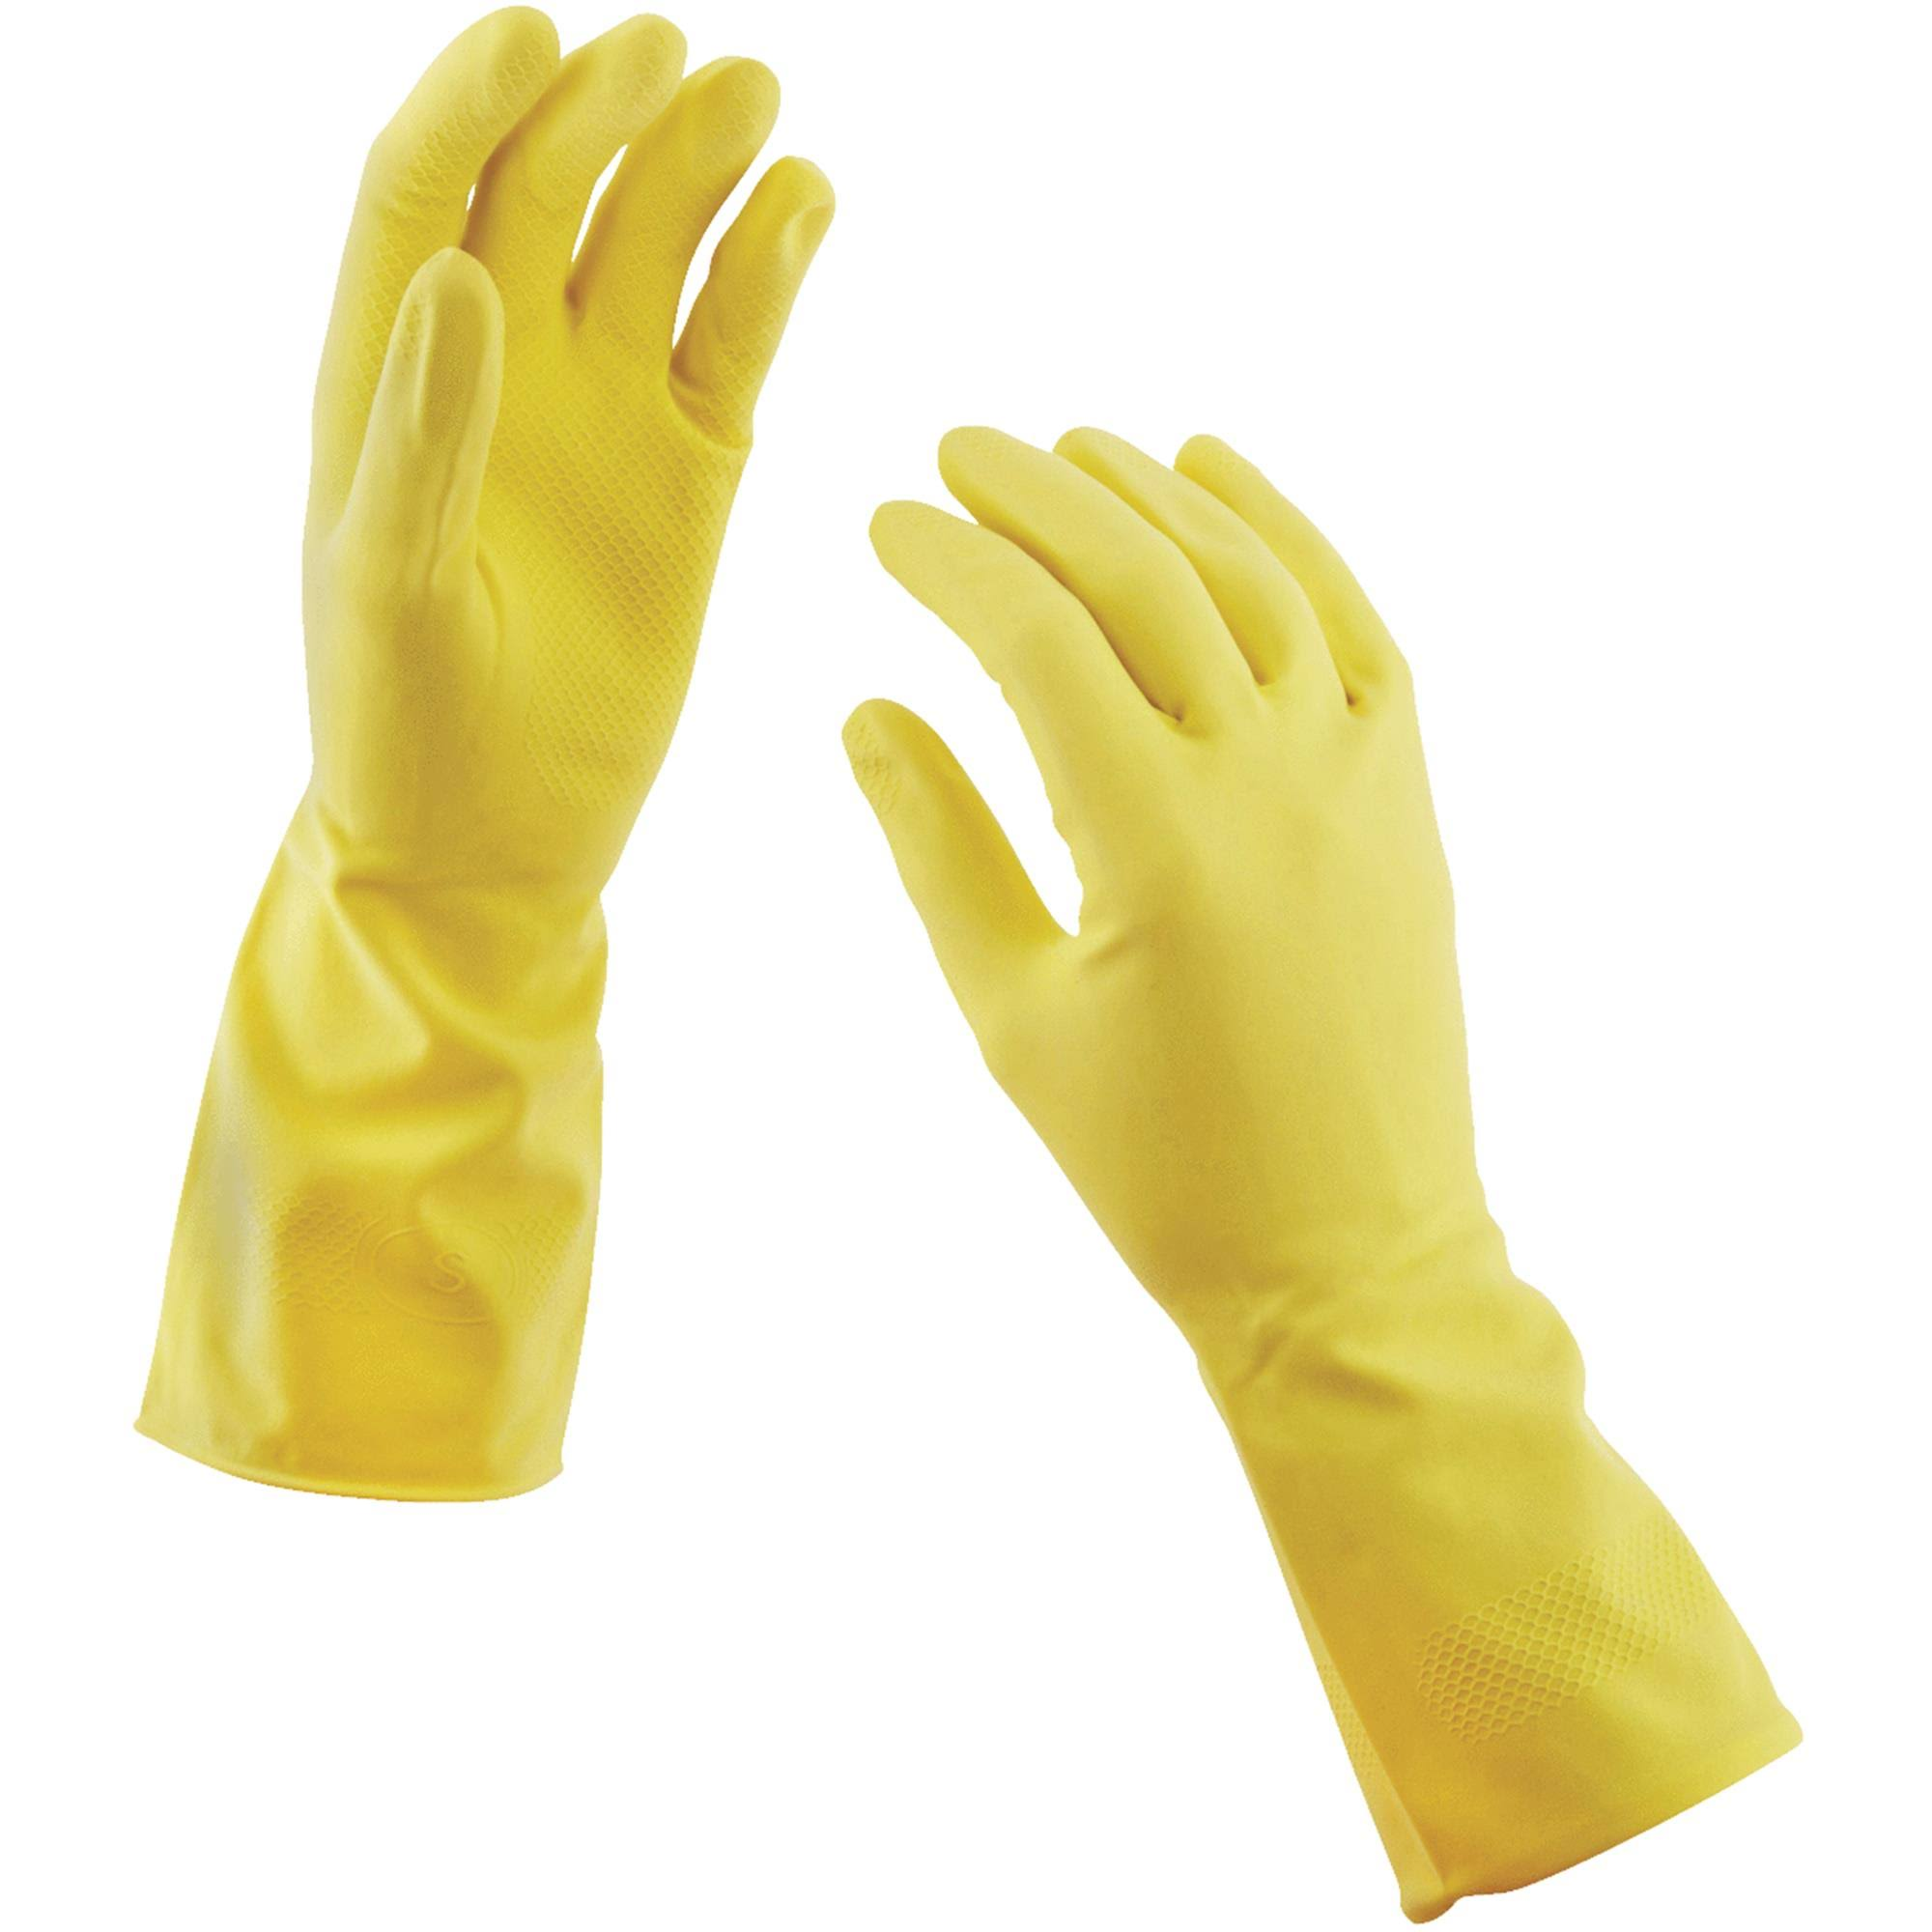 Big Time Products Soft Scrub Reusable Latex Gloves - 2 Pack, Extra Large